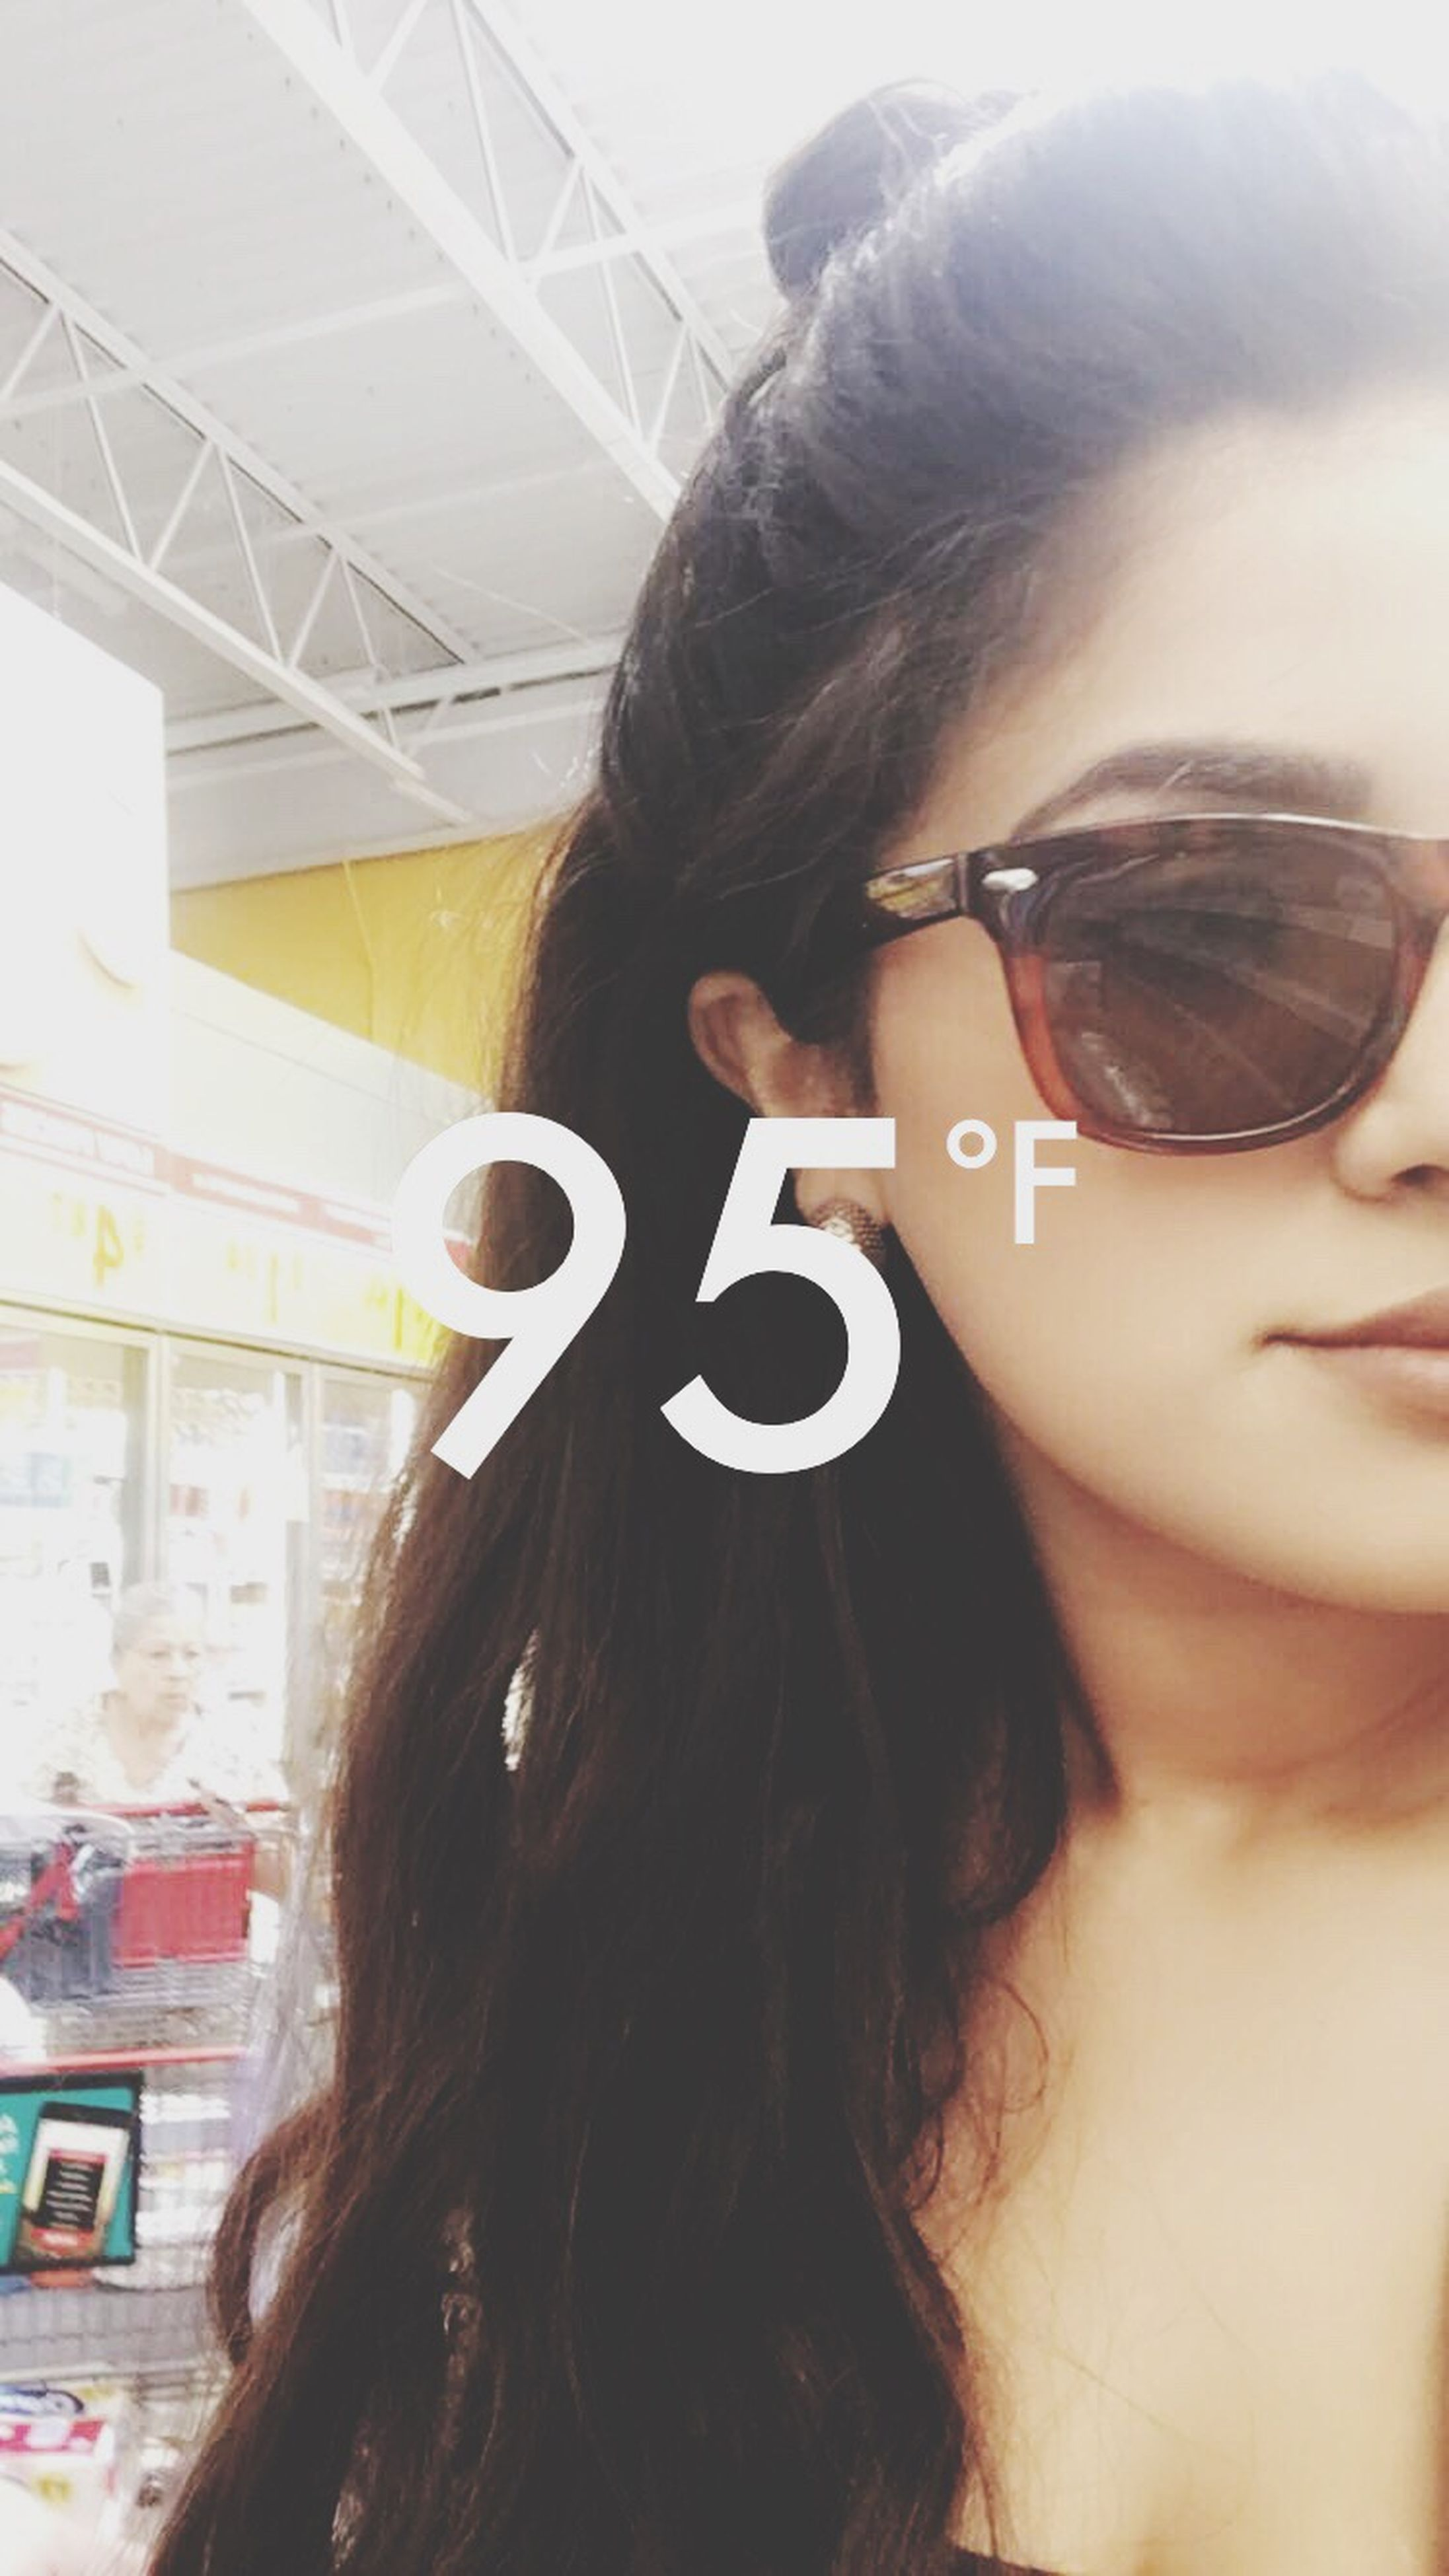 long hair, headshot, leisure activity, young adult, lifestyles, young women, sunglasses, person, beauty, focus on foreground